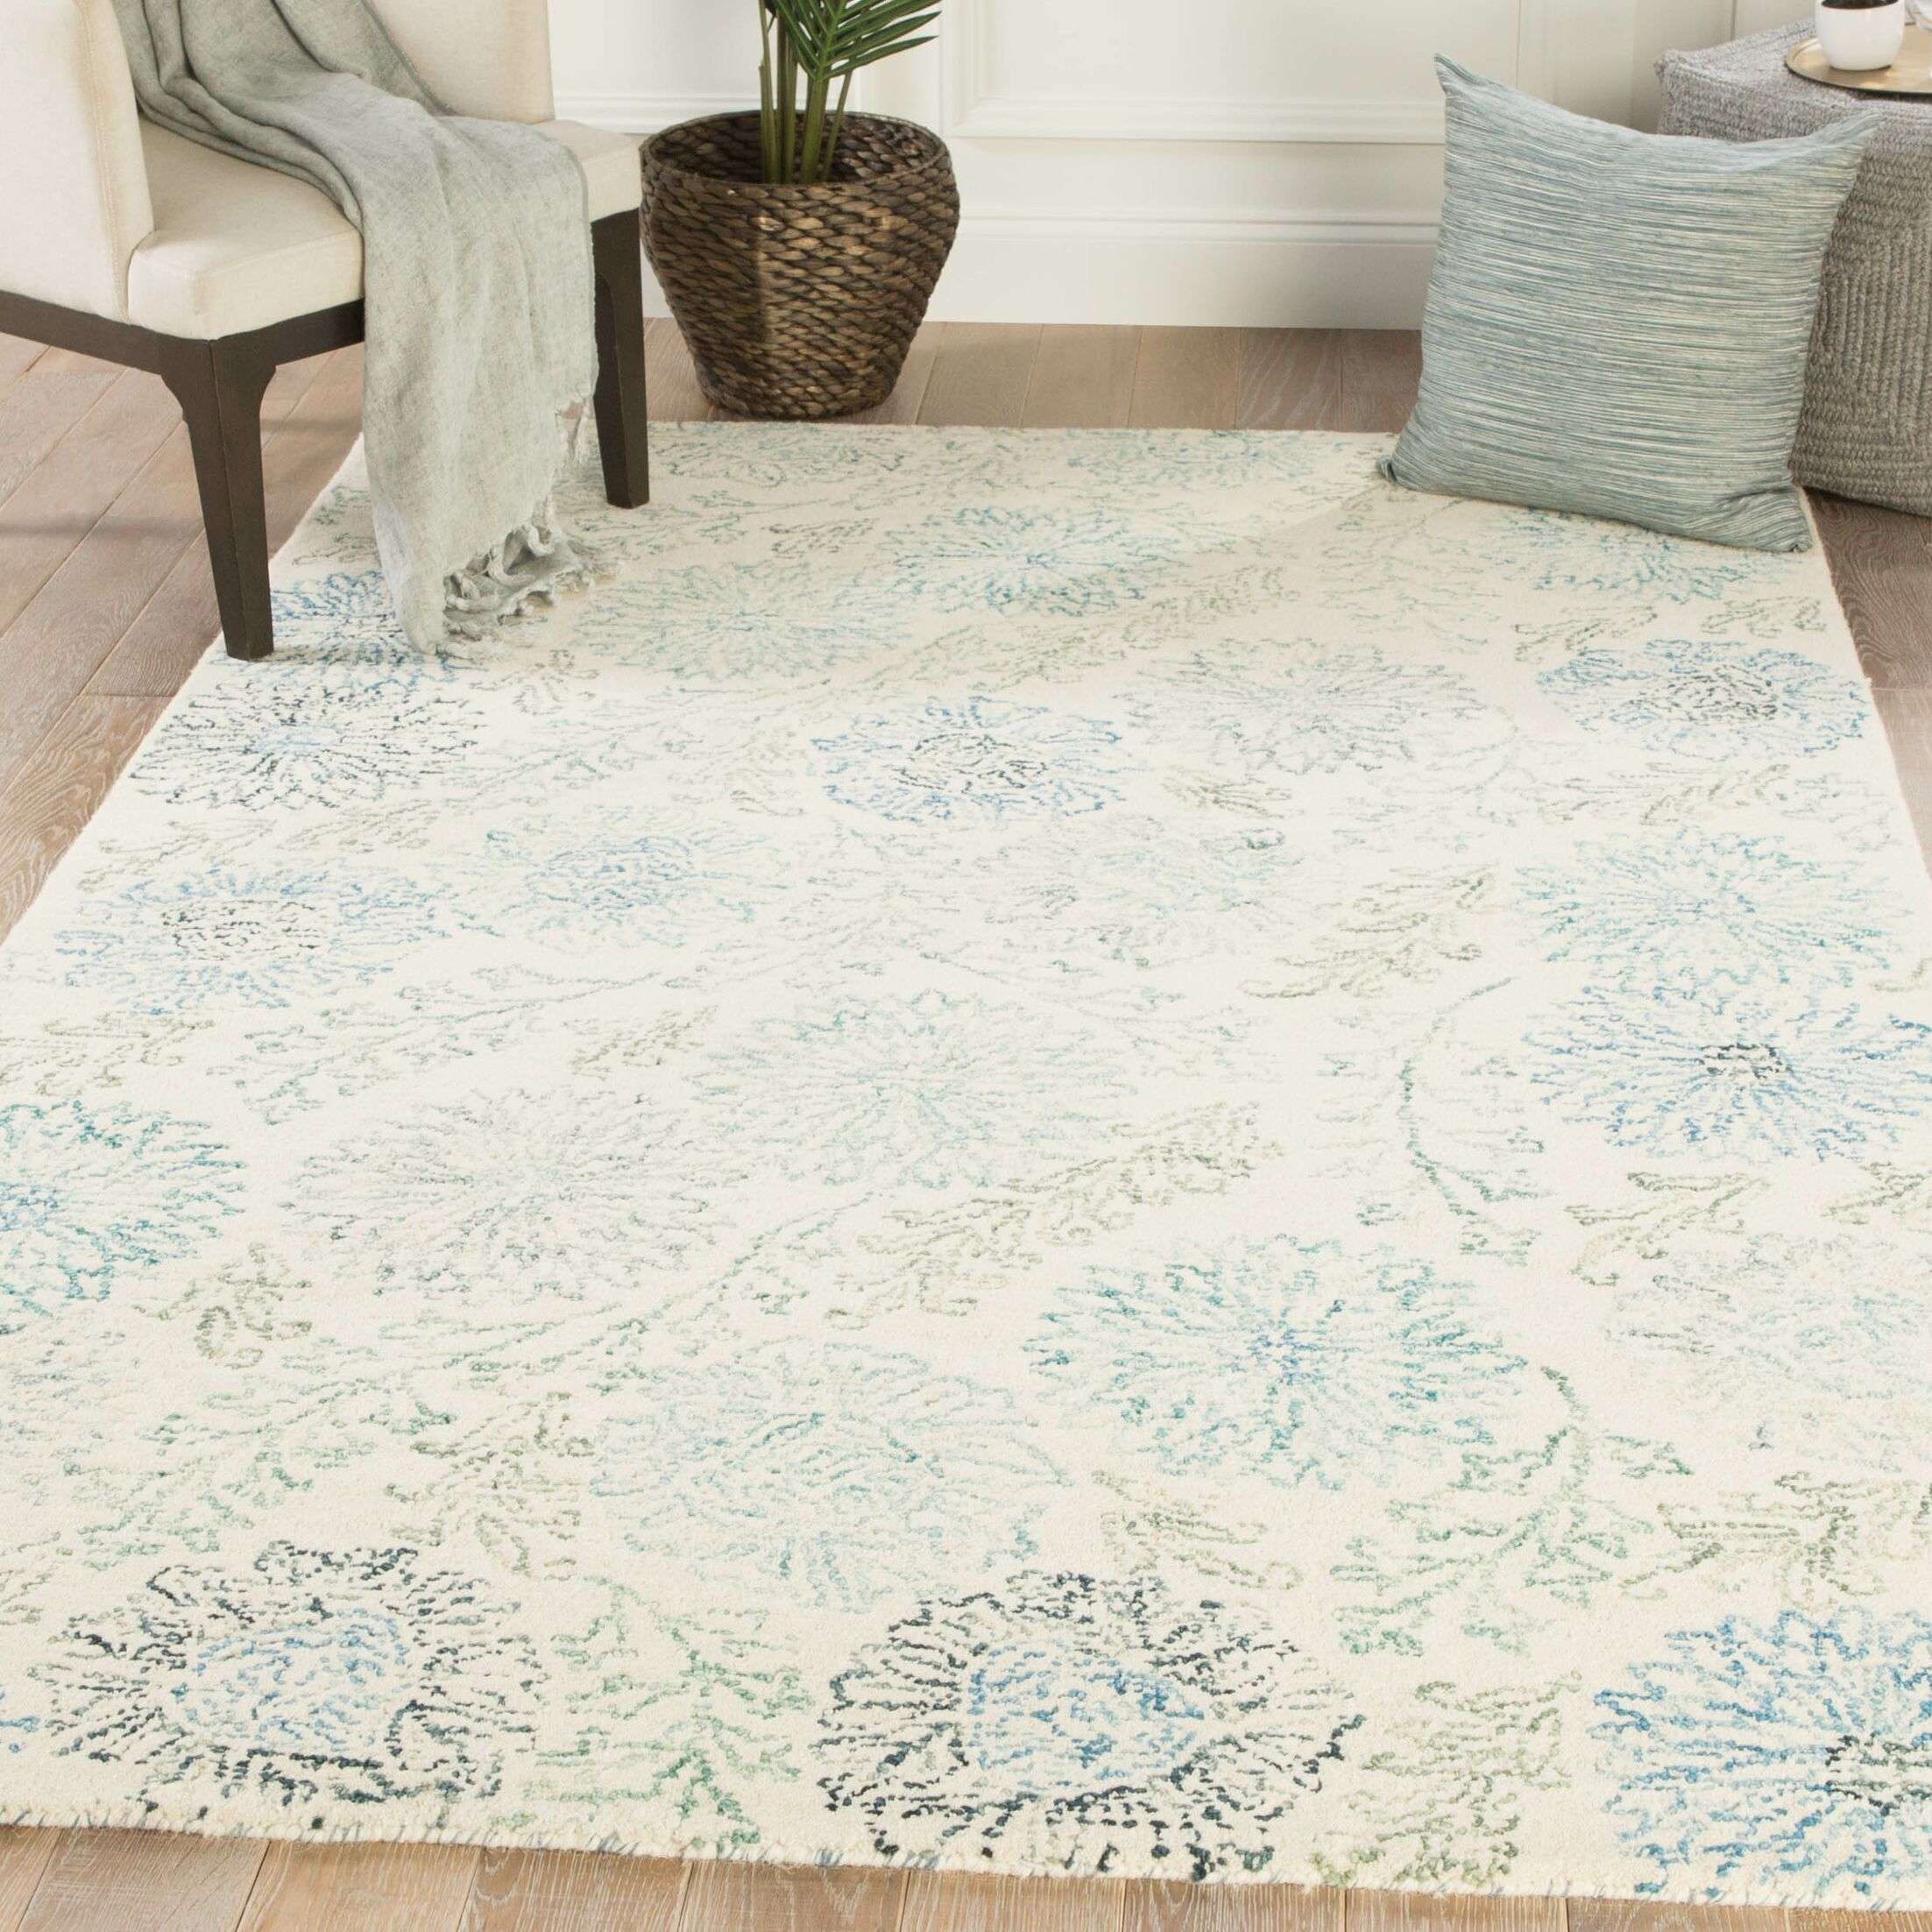 Rushin Zinnia Floral Hand-Tufted Blue/Ivory Area Rug Rug Size: Rectangle 8' x 10'